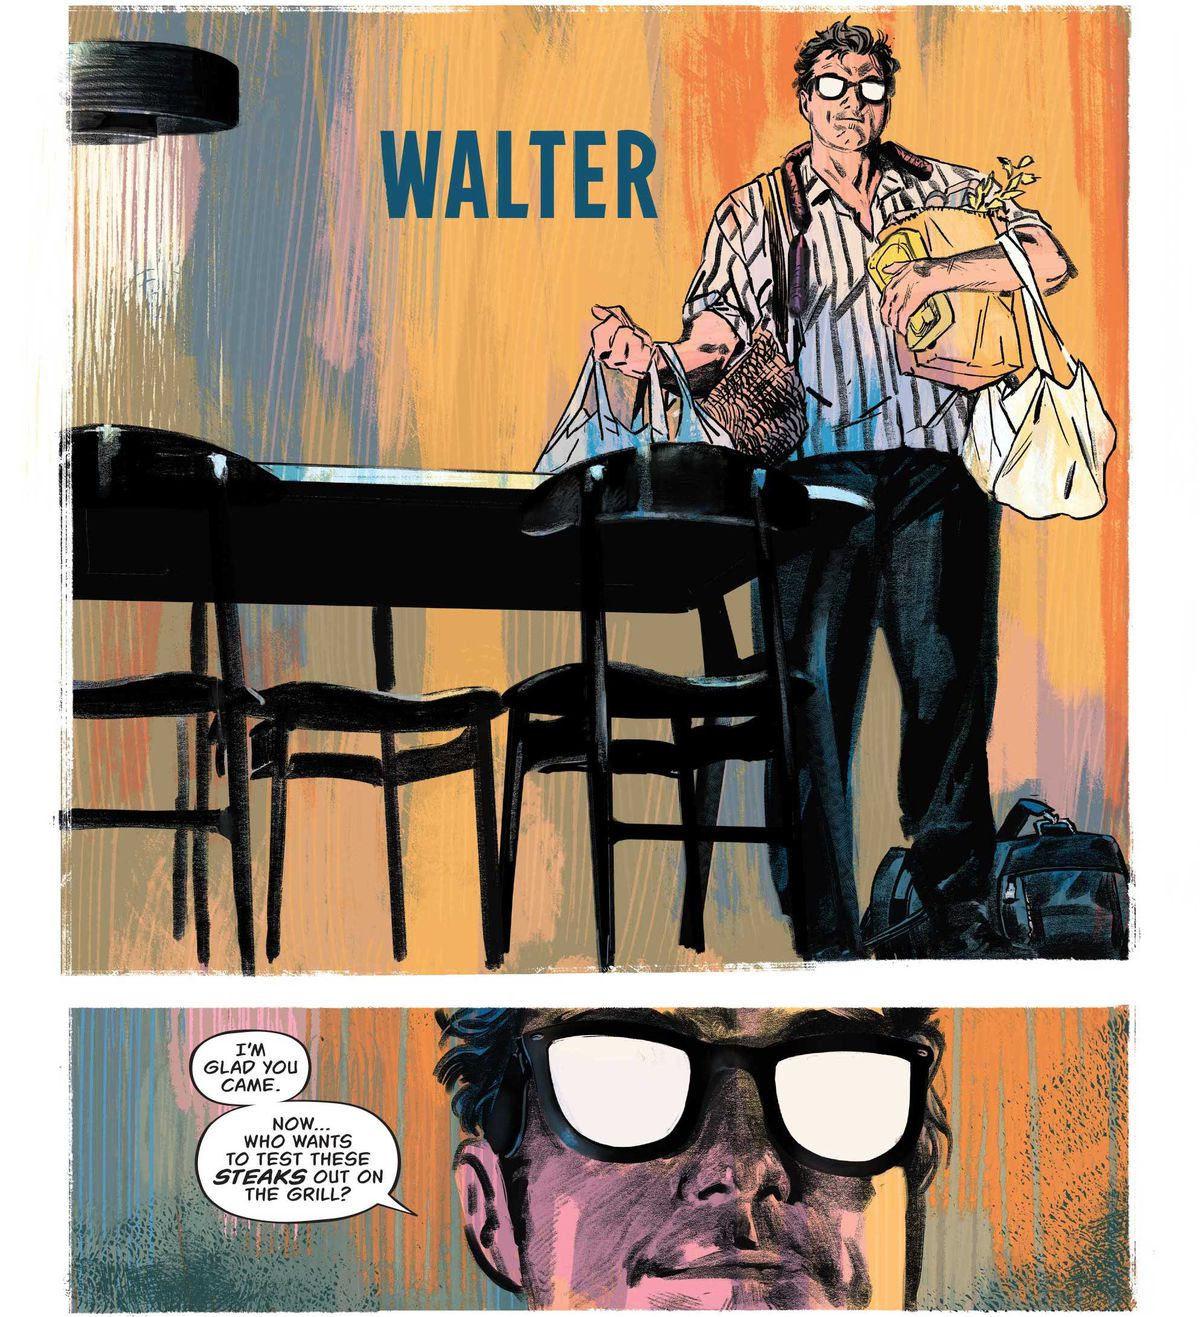 """Walter sets groceries down on a table, saying """"I'm glad you came. Now... who wants to test these steaks out on the grill?"""" His glasses reflect the light ominously like an anime villain in The Nice House on the Lake #1, DC Comics (2021)."""